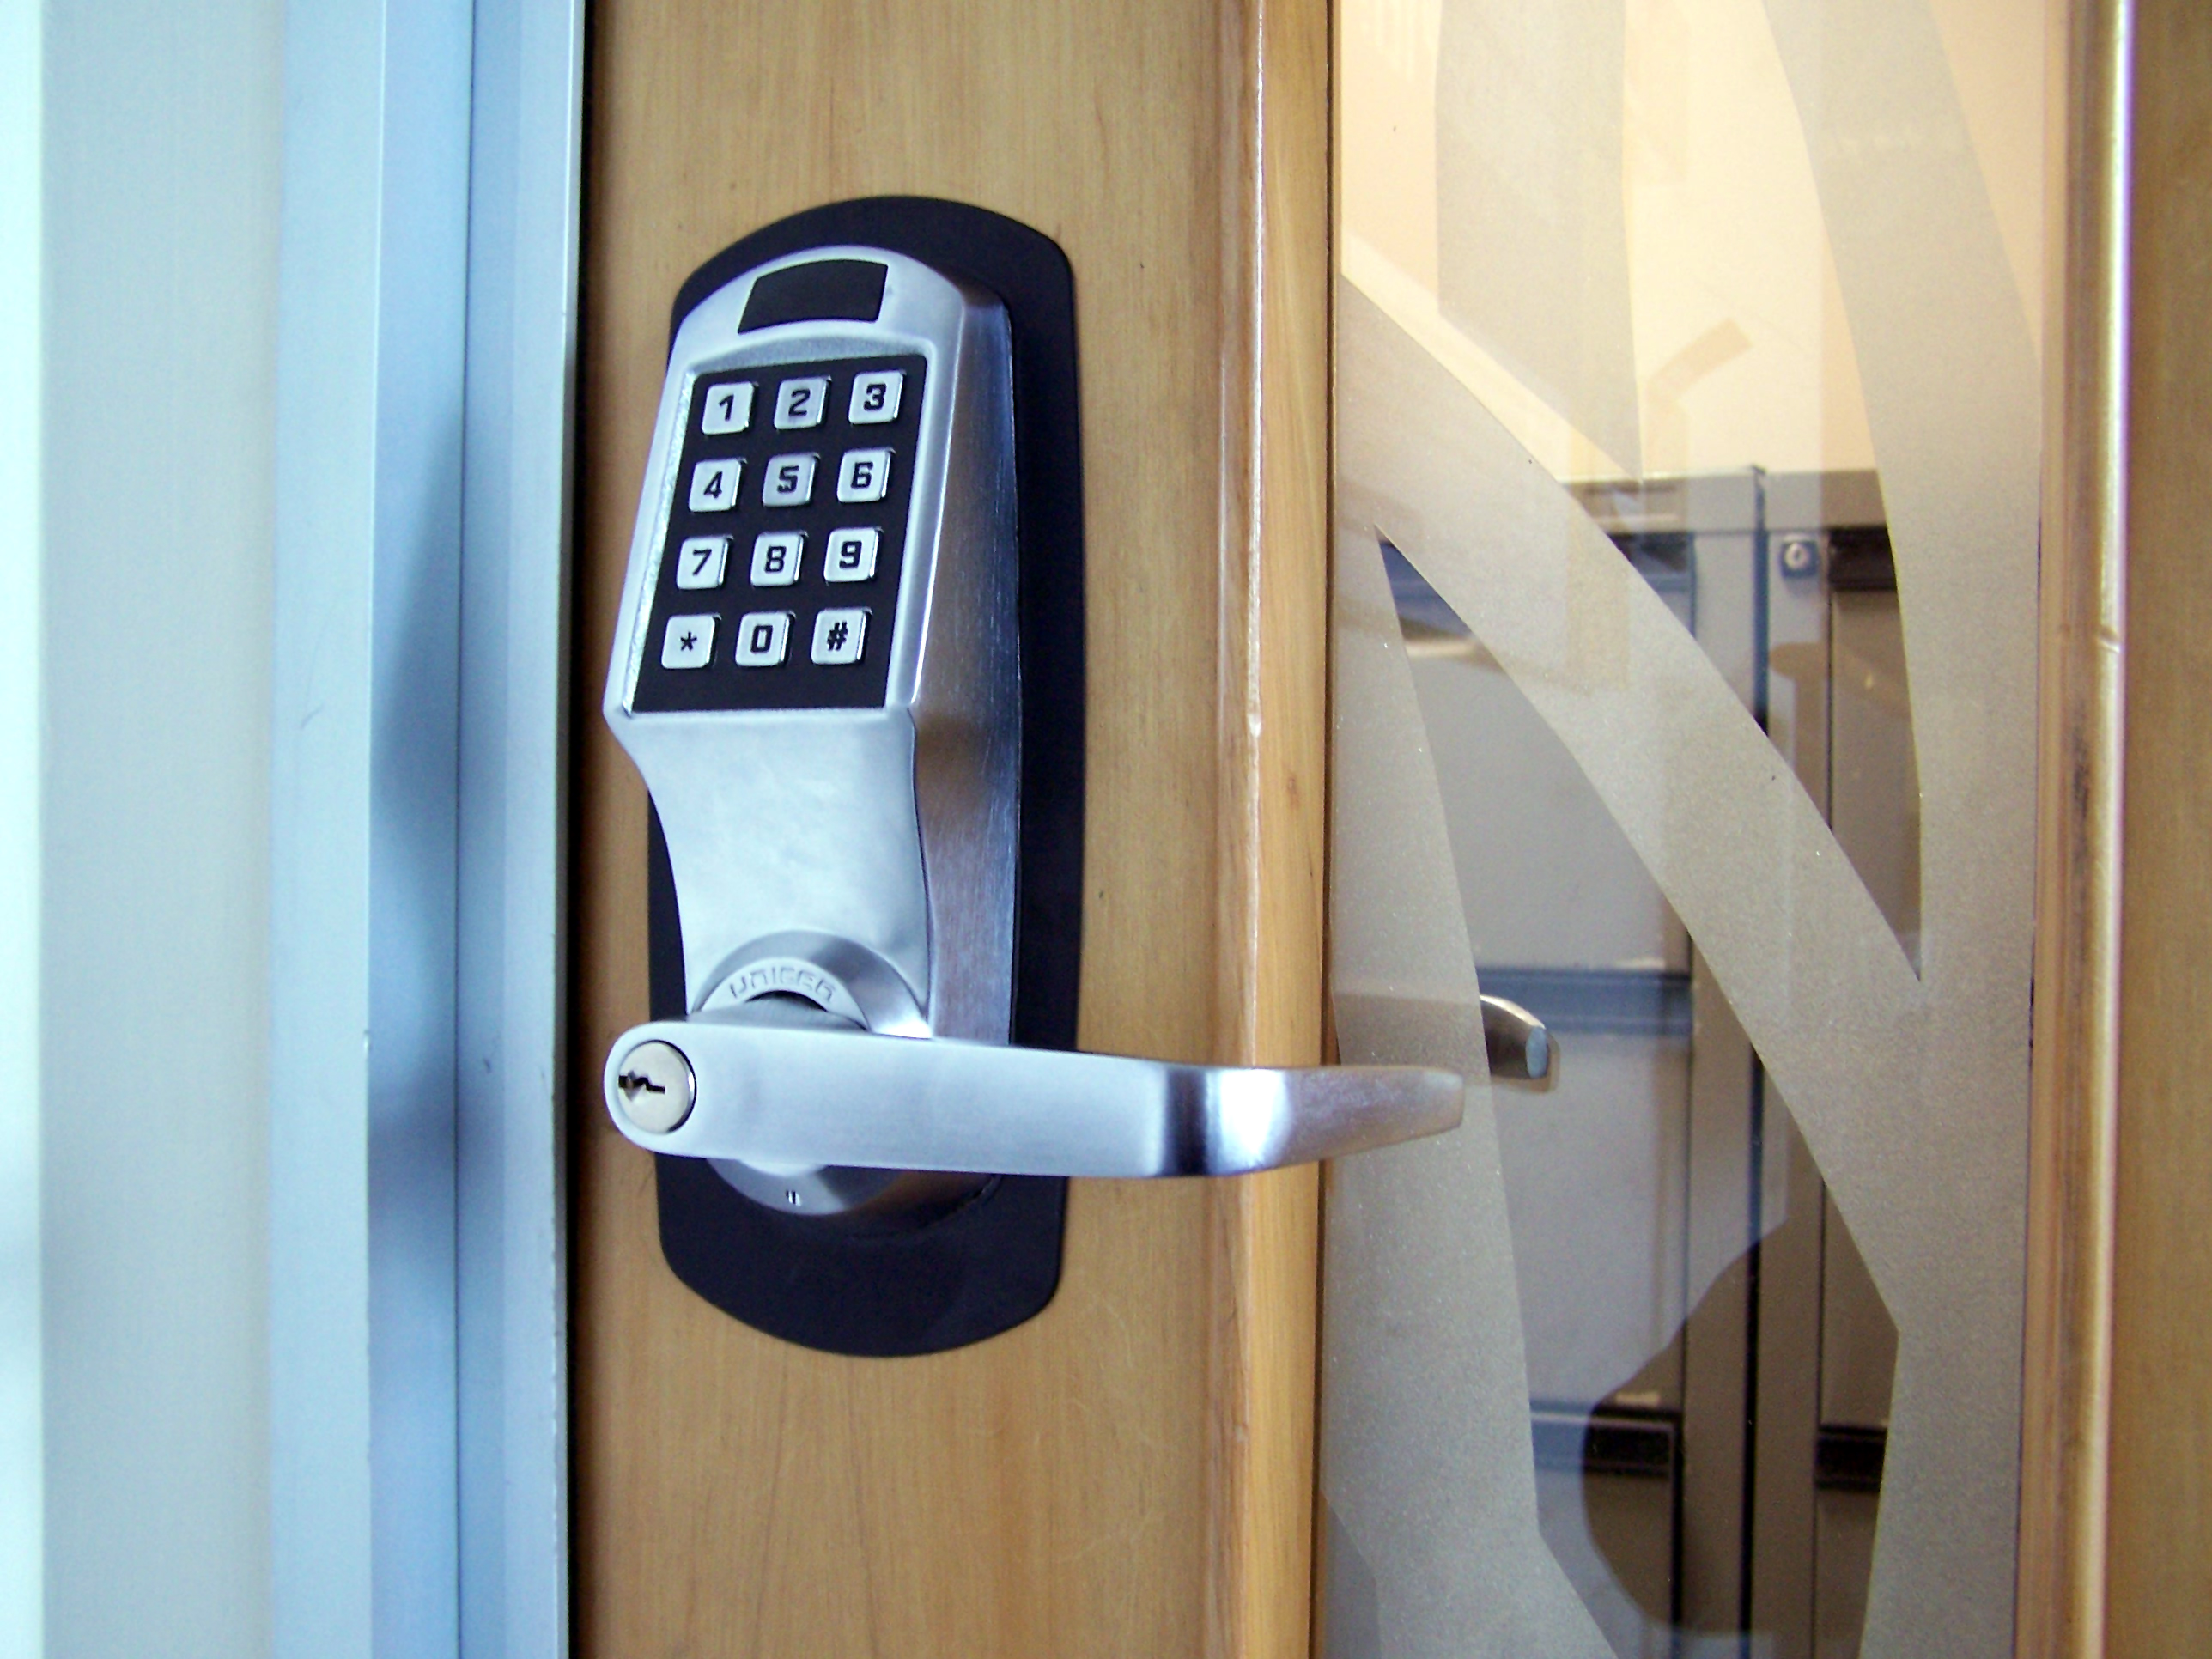 Physical Security Technology